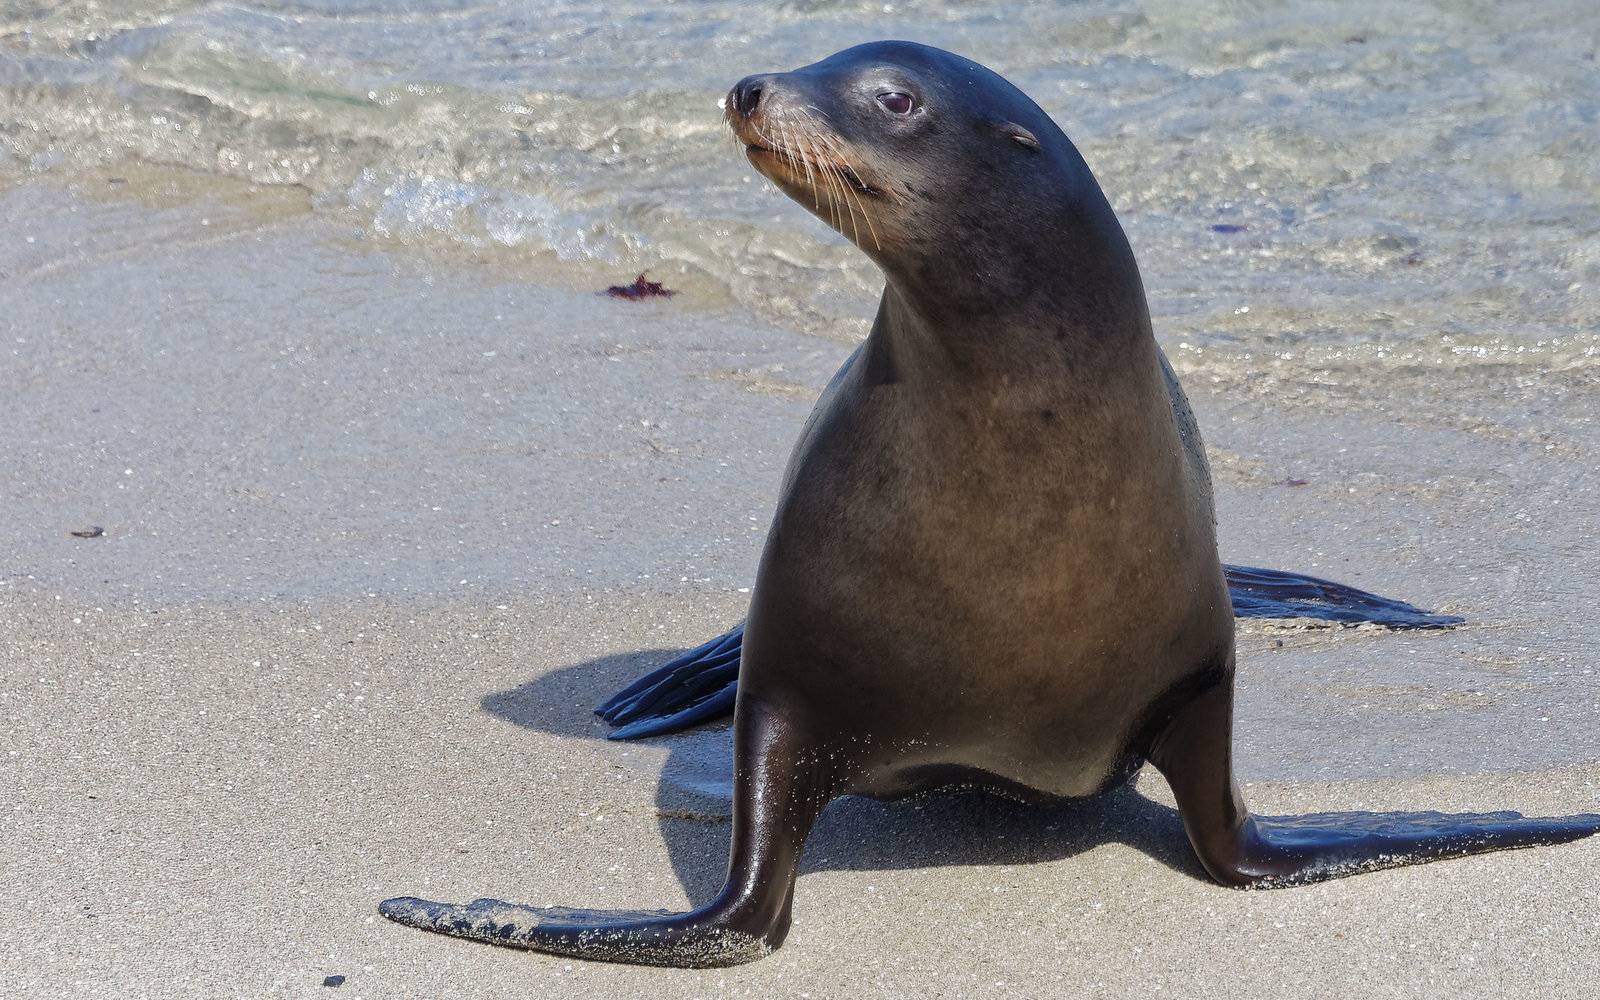 A sea lion went for a swim in a hotel pool and we can't get over how cute the video is